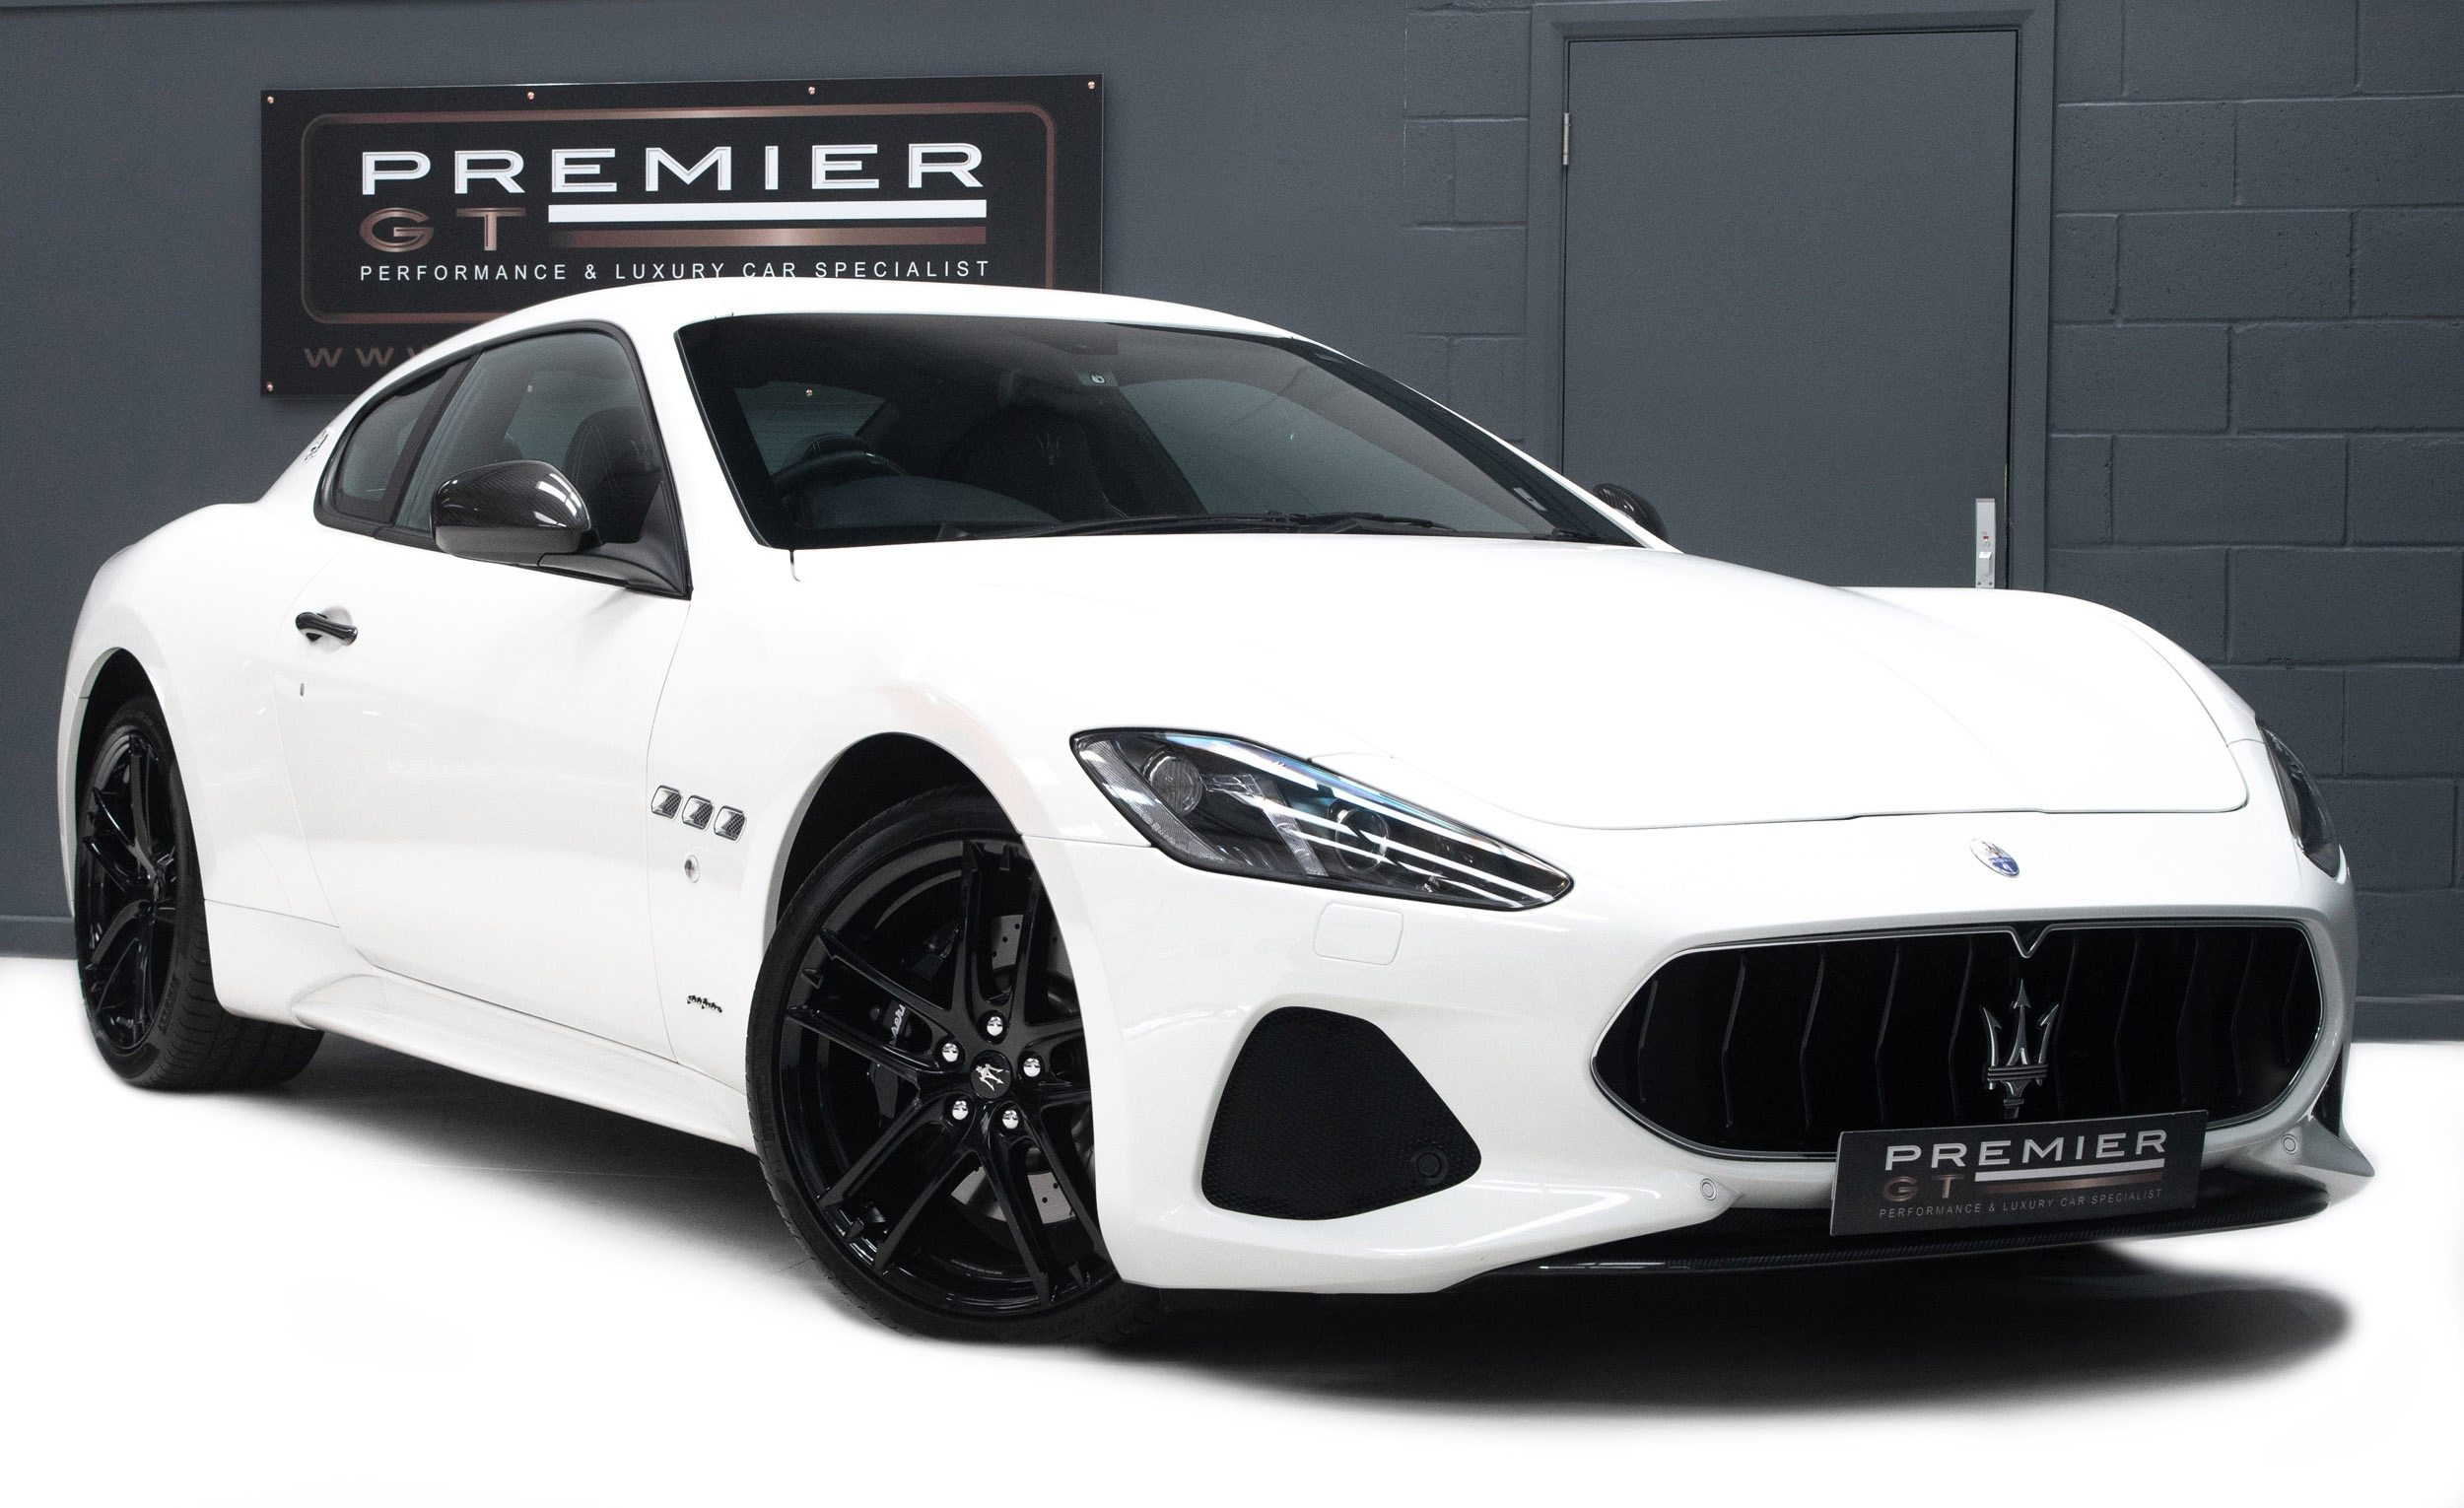 2017 Maserati Granturismo Sport 4 7 V8 Mc Auto Shift Coupe Latest 2018 Facelift Model 668 Miles Carbon Fibre Aerodynamic Pack Sorry Now Sold